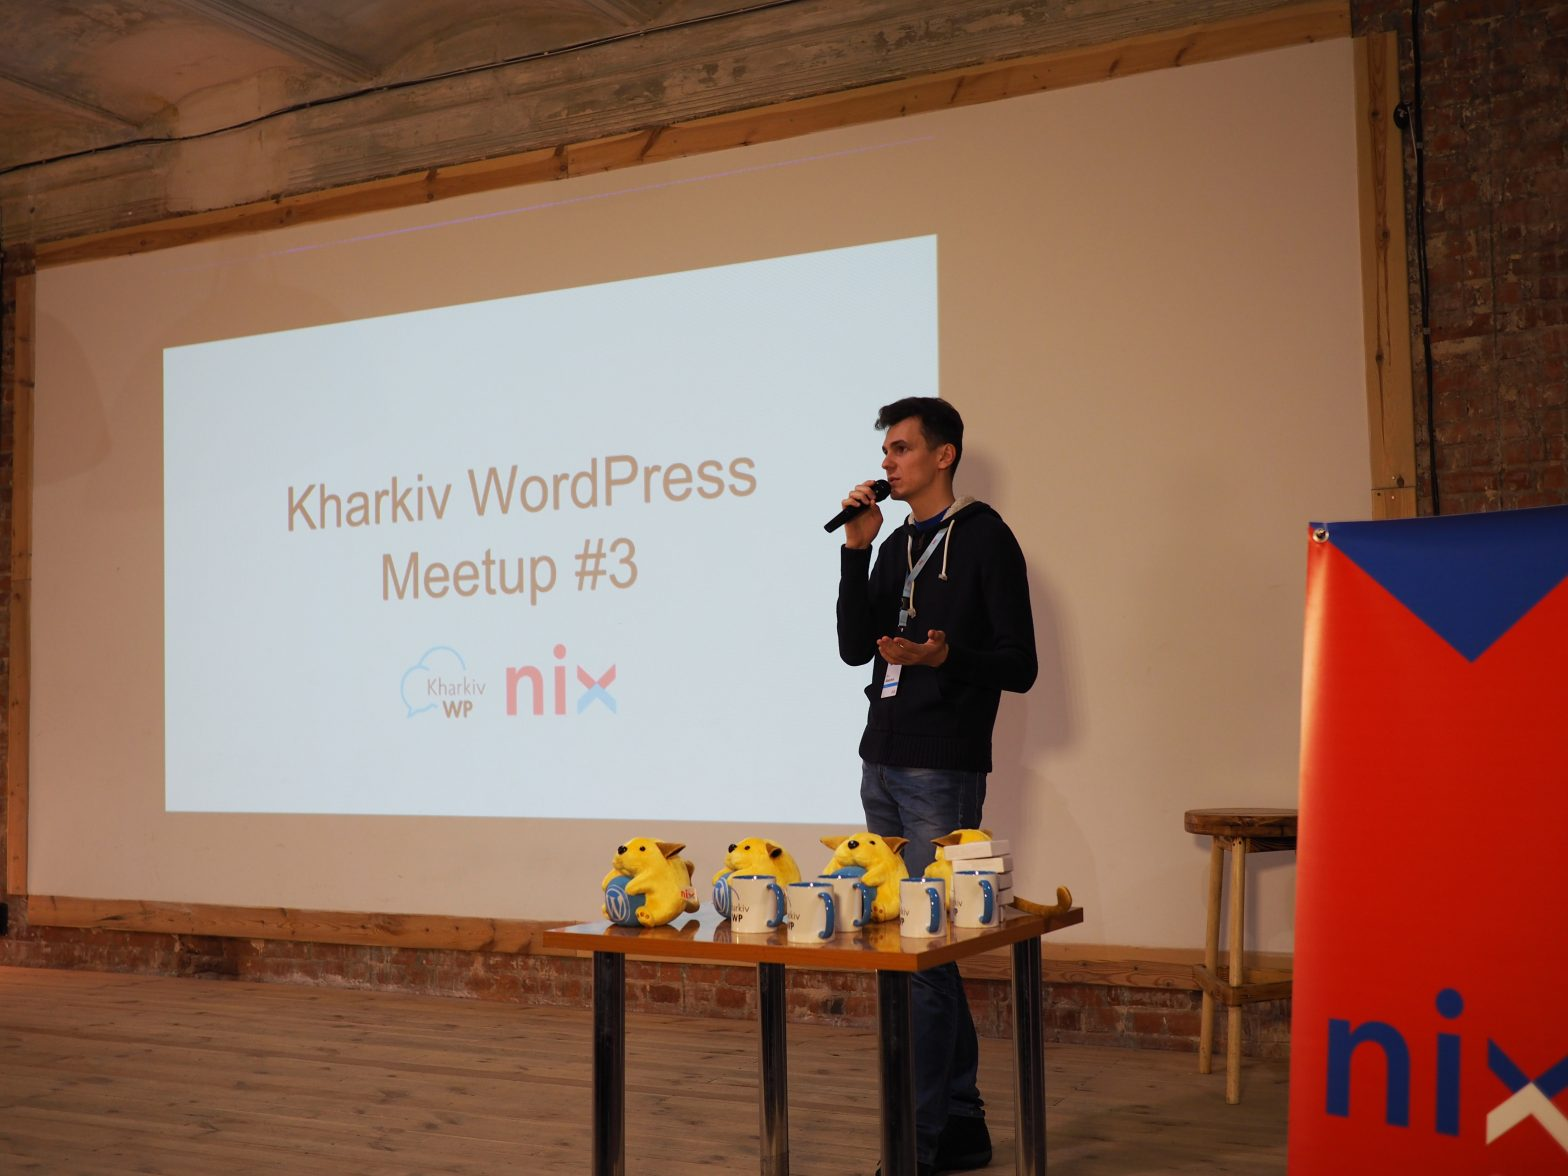 Kharkiv WordPress Meetup #3